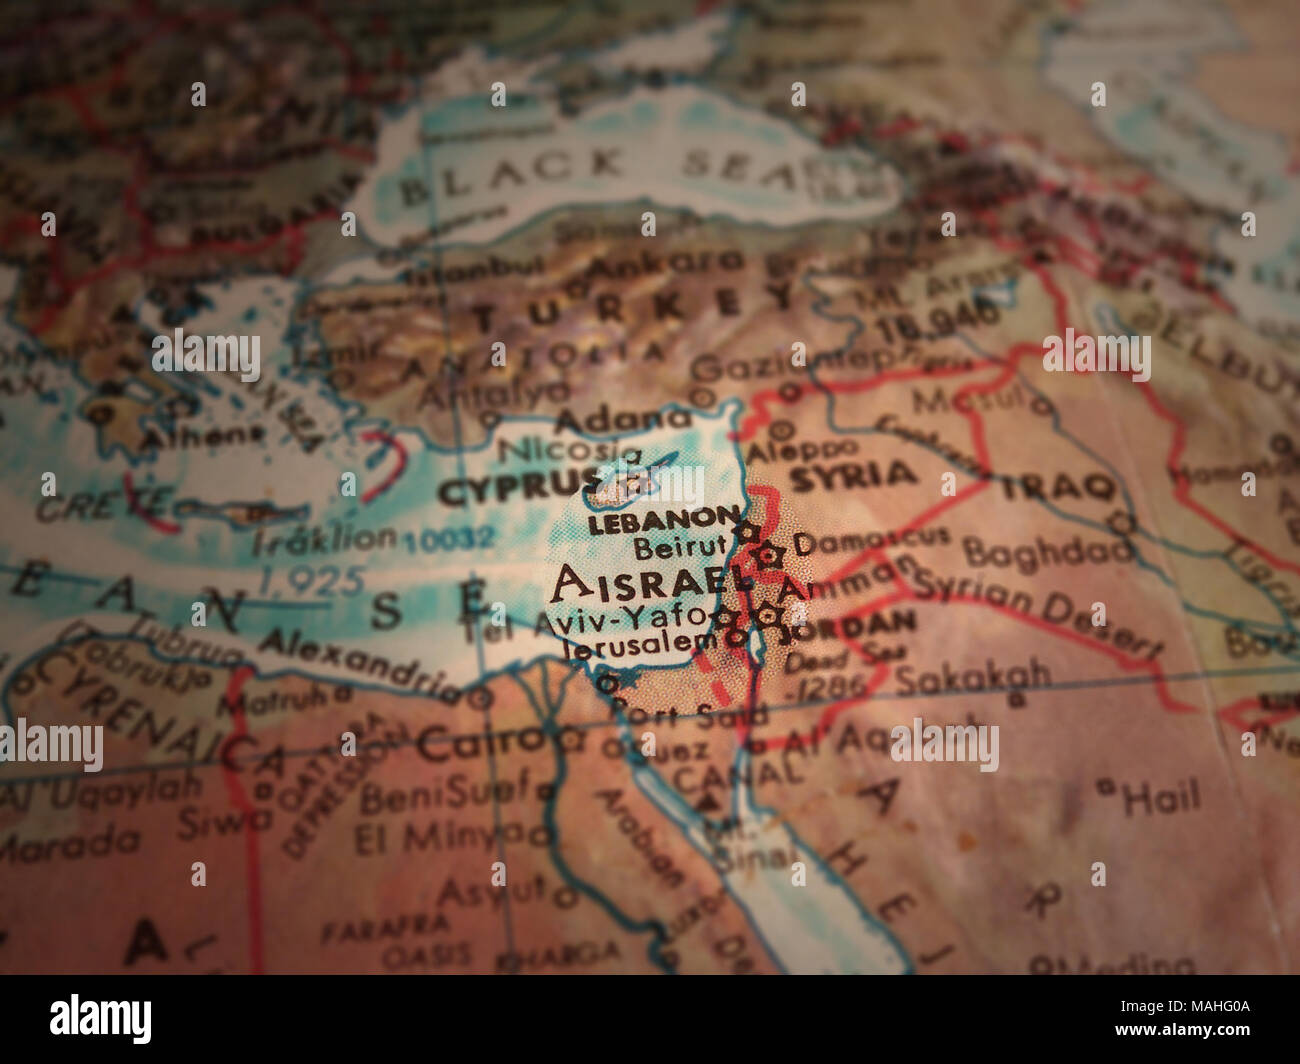 Middle east map. Israel in focus Stock Photo: 178635978 - Alamy